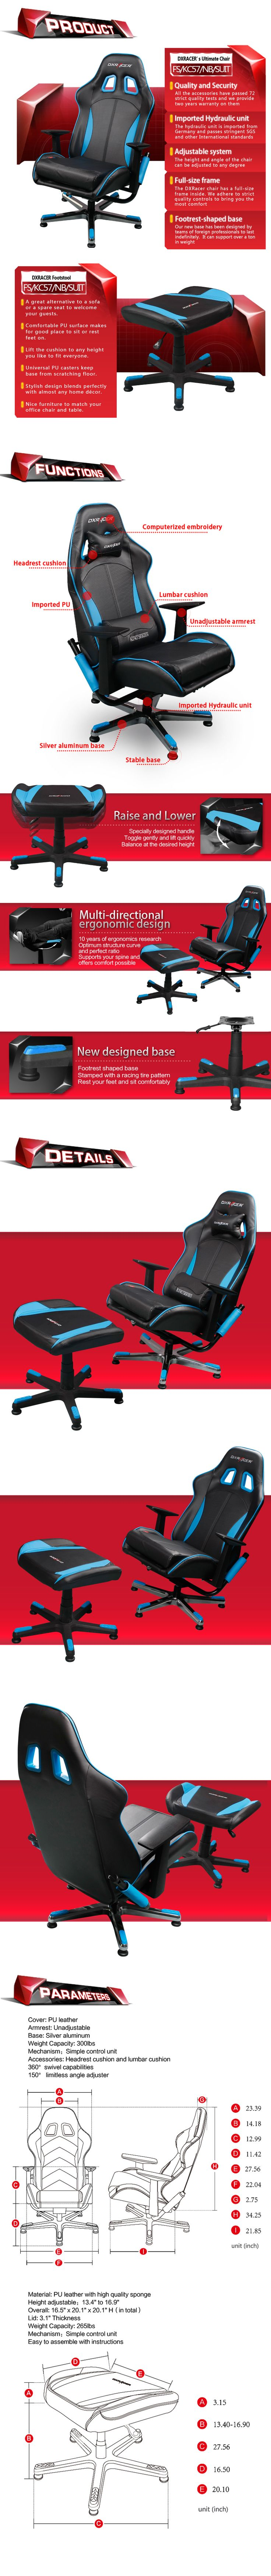 57 best Video Gaming Chairs DXRacer images on Pinterest